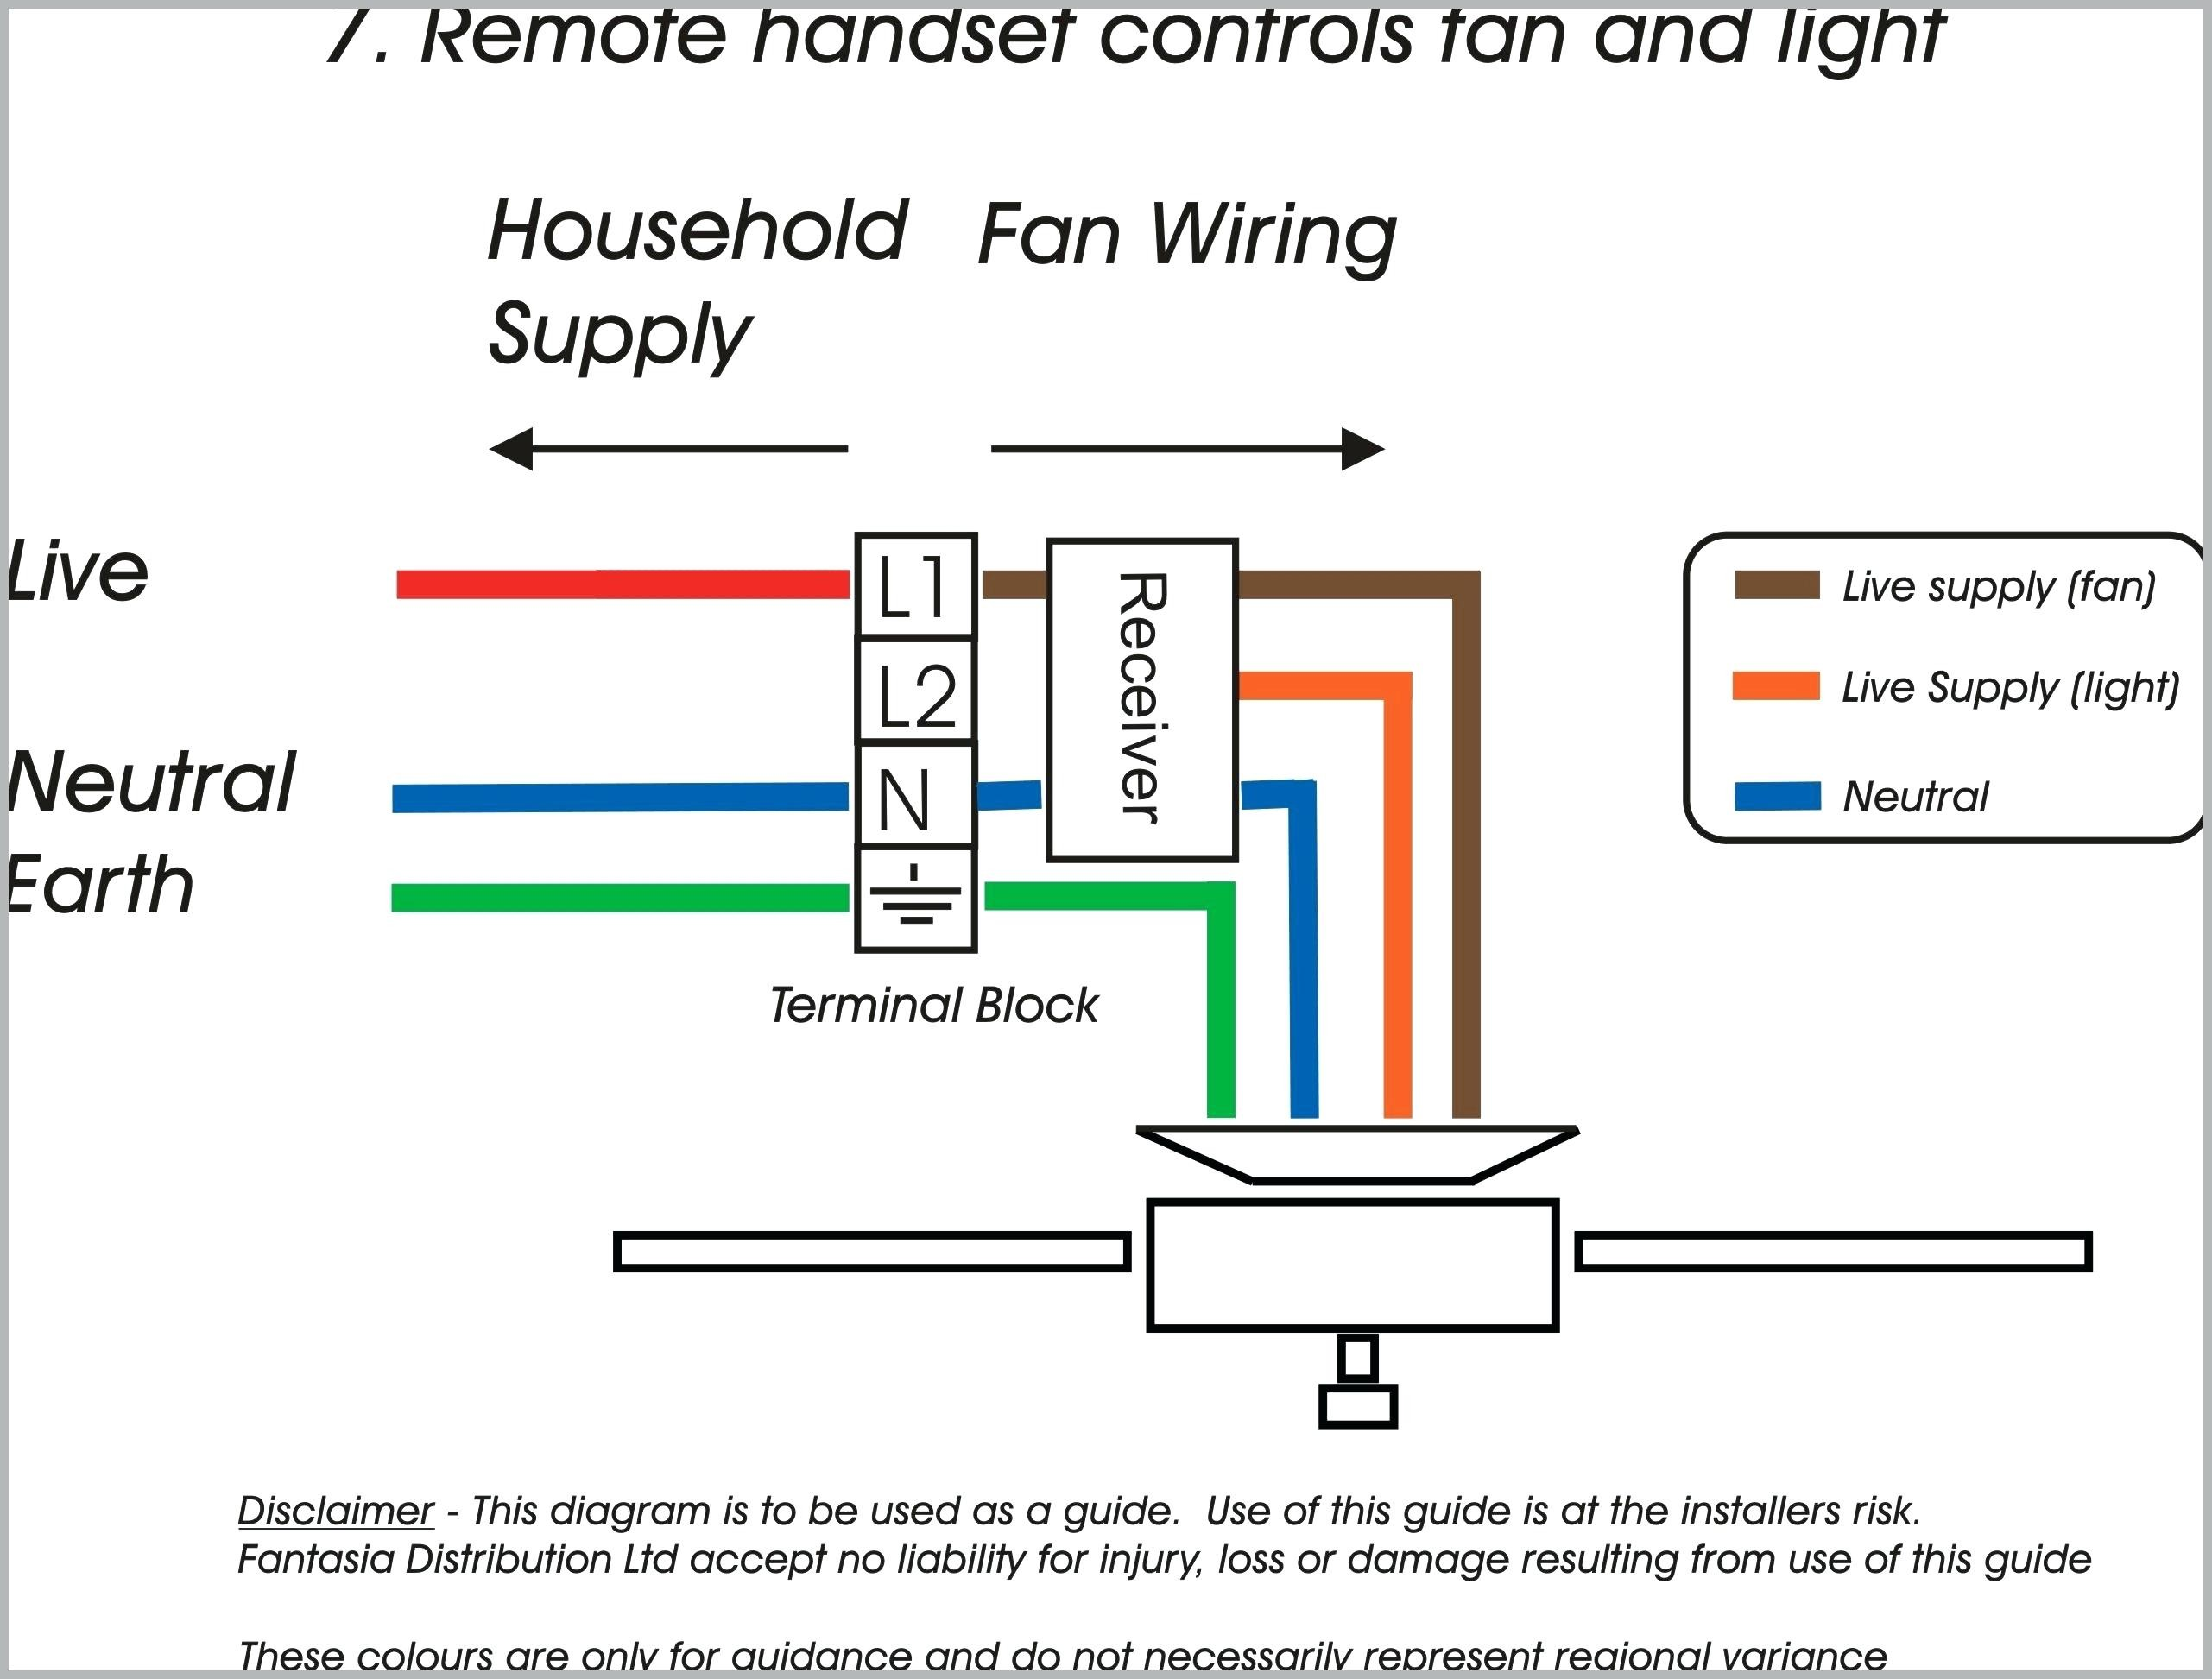 Hampton Bay Ceiling Fan Switch Wiring Diagram Wiring Diagram for Hunter Fan with Light Free Download Wiring Of Hampton Bay Ceiling Fan Switch Wiring Diagram